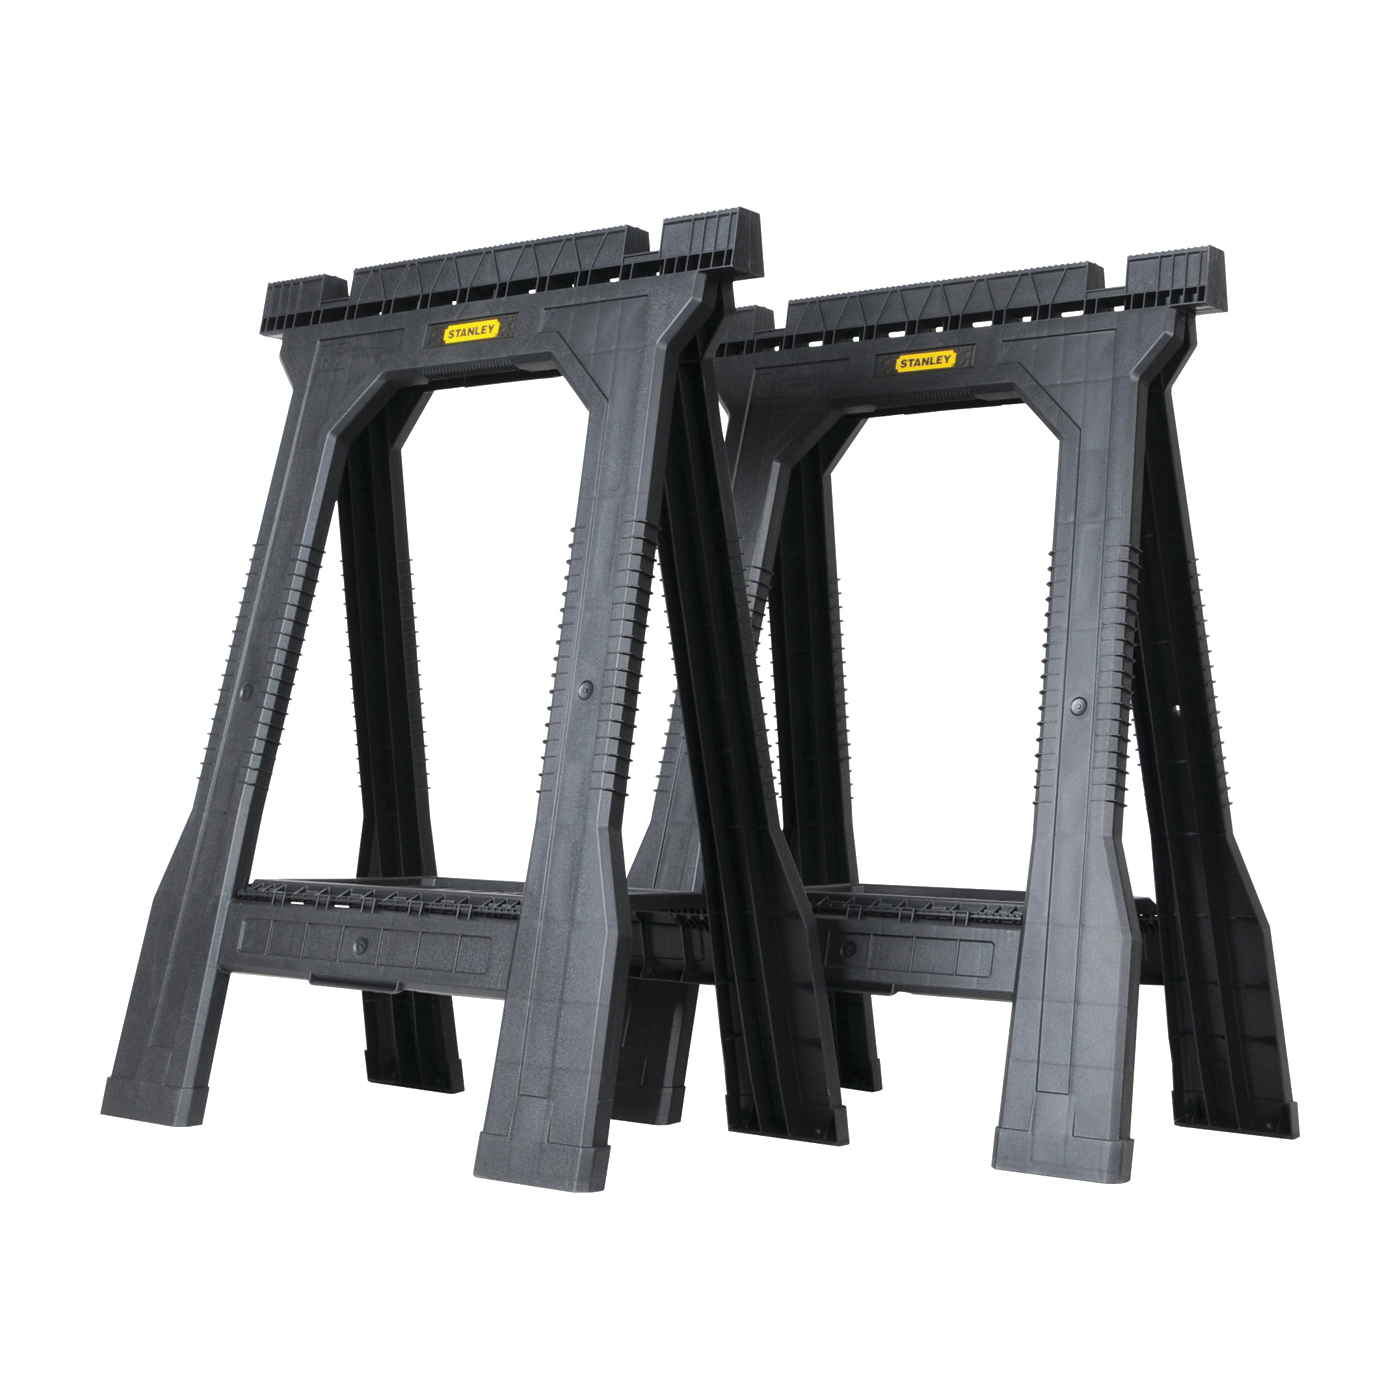 Picture of STANLEY FATMAX STST60952 Folding Sawhorse, 800 lb, 5 in W, 32 in H, 22-1/2 in D, Plastic, Black